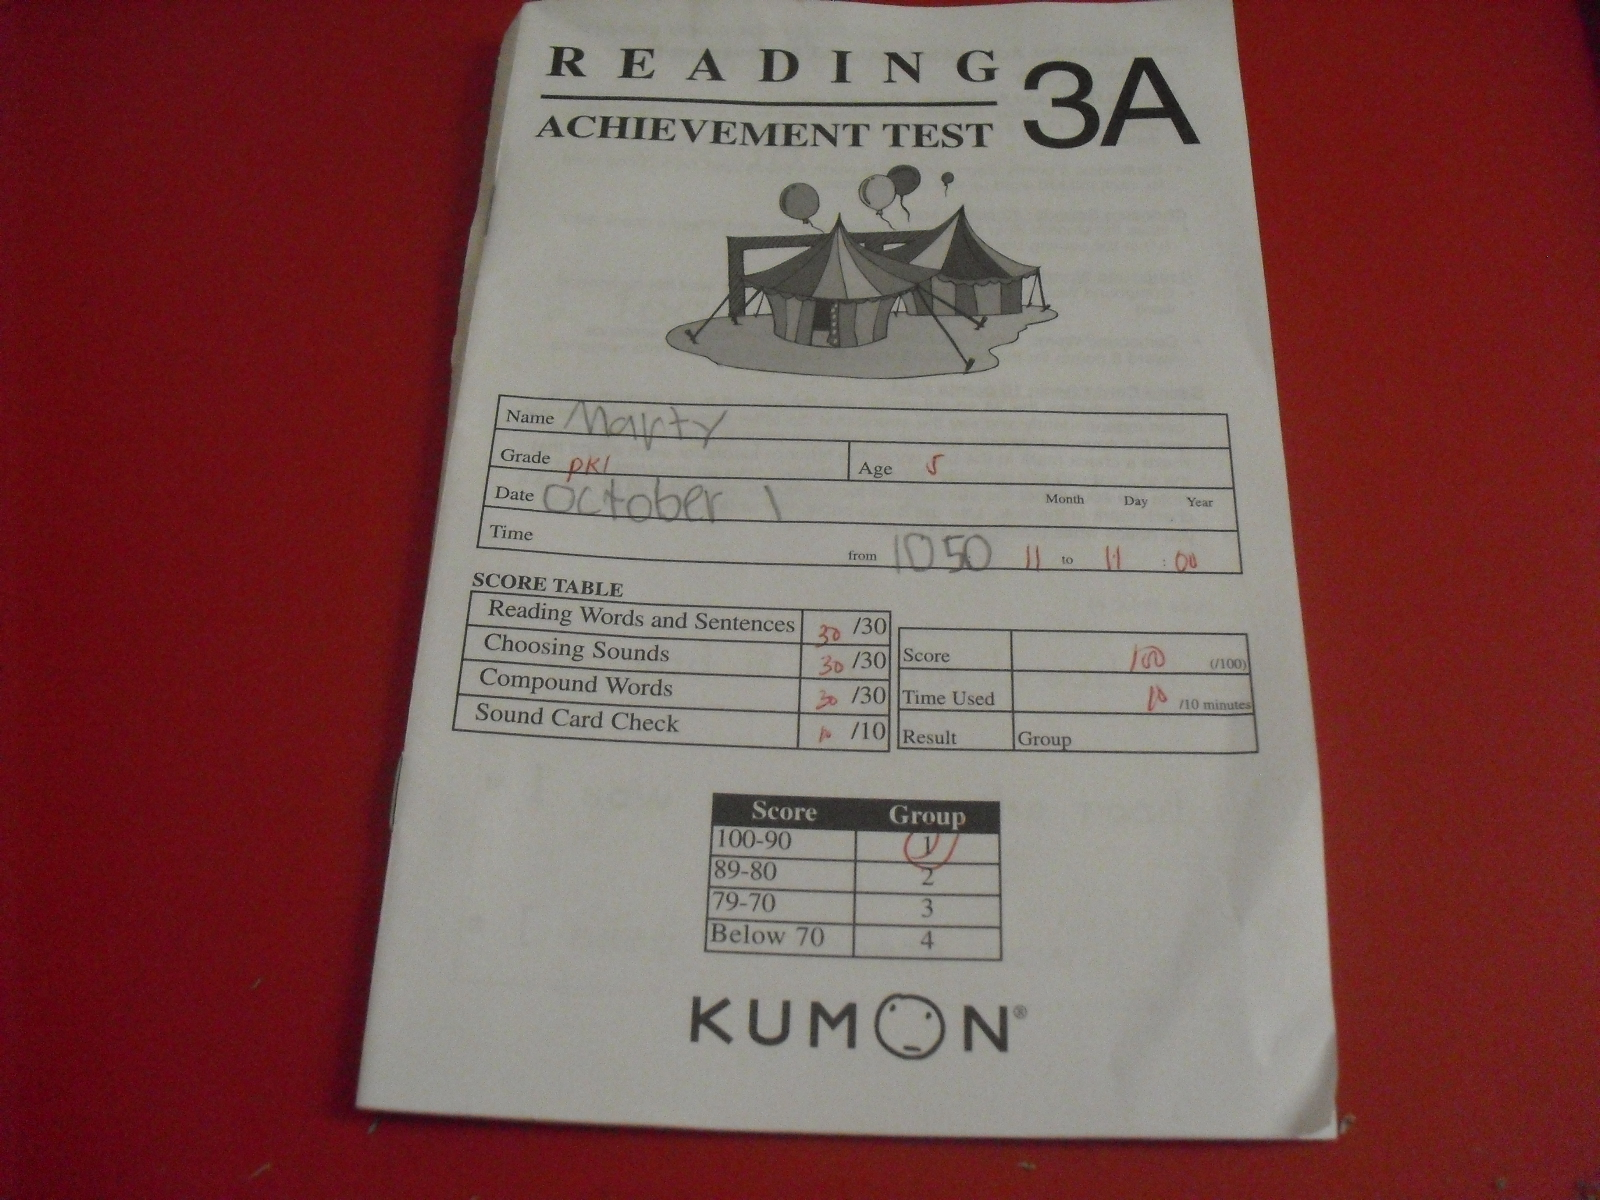 Kumon Worksheet Level 3a